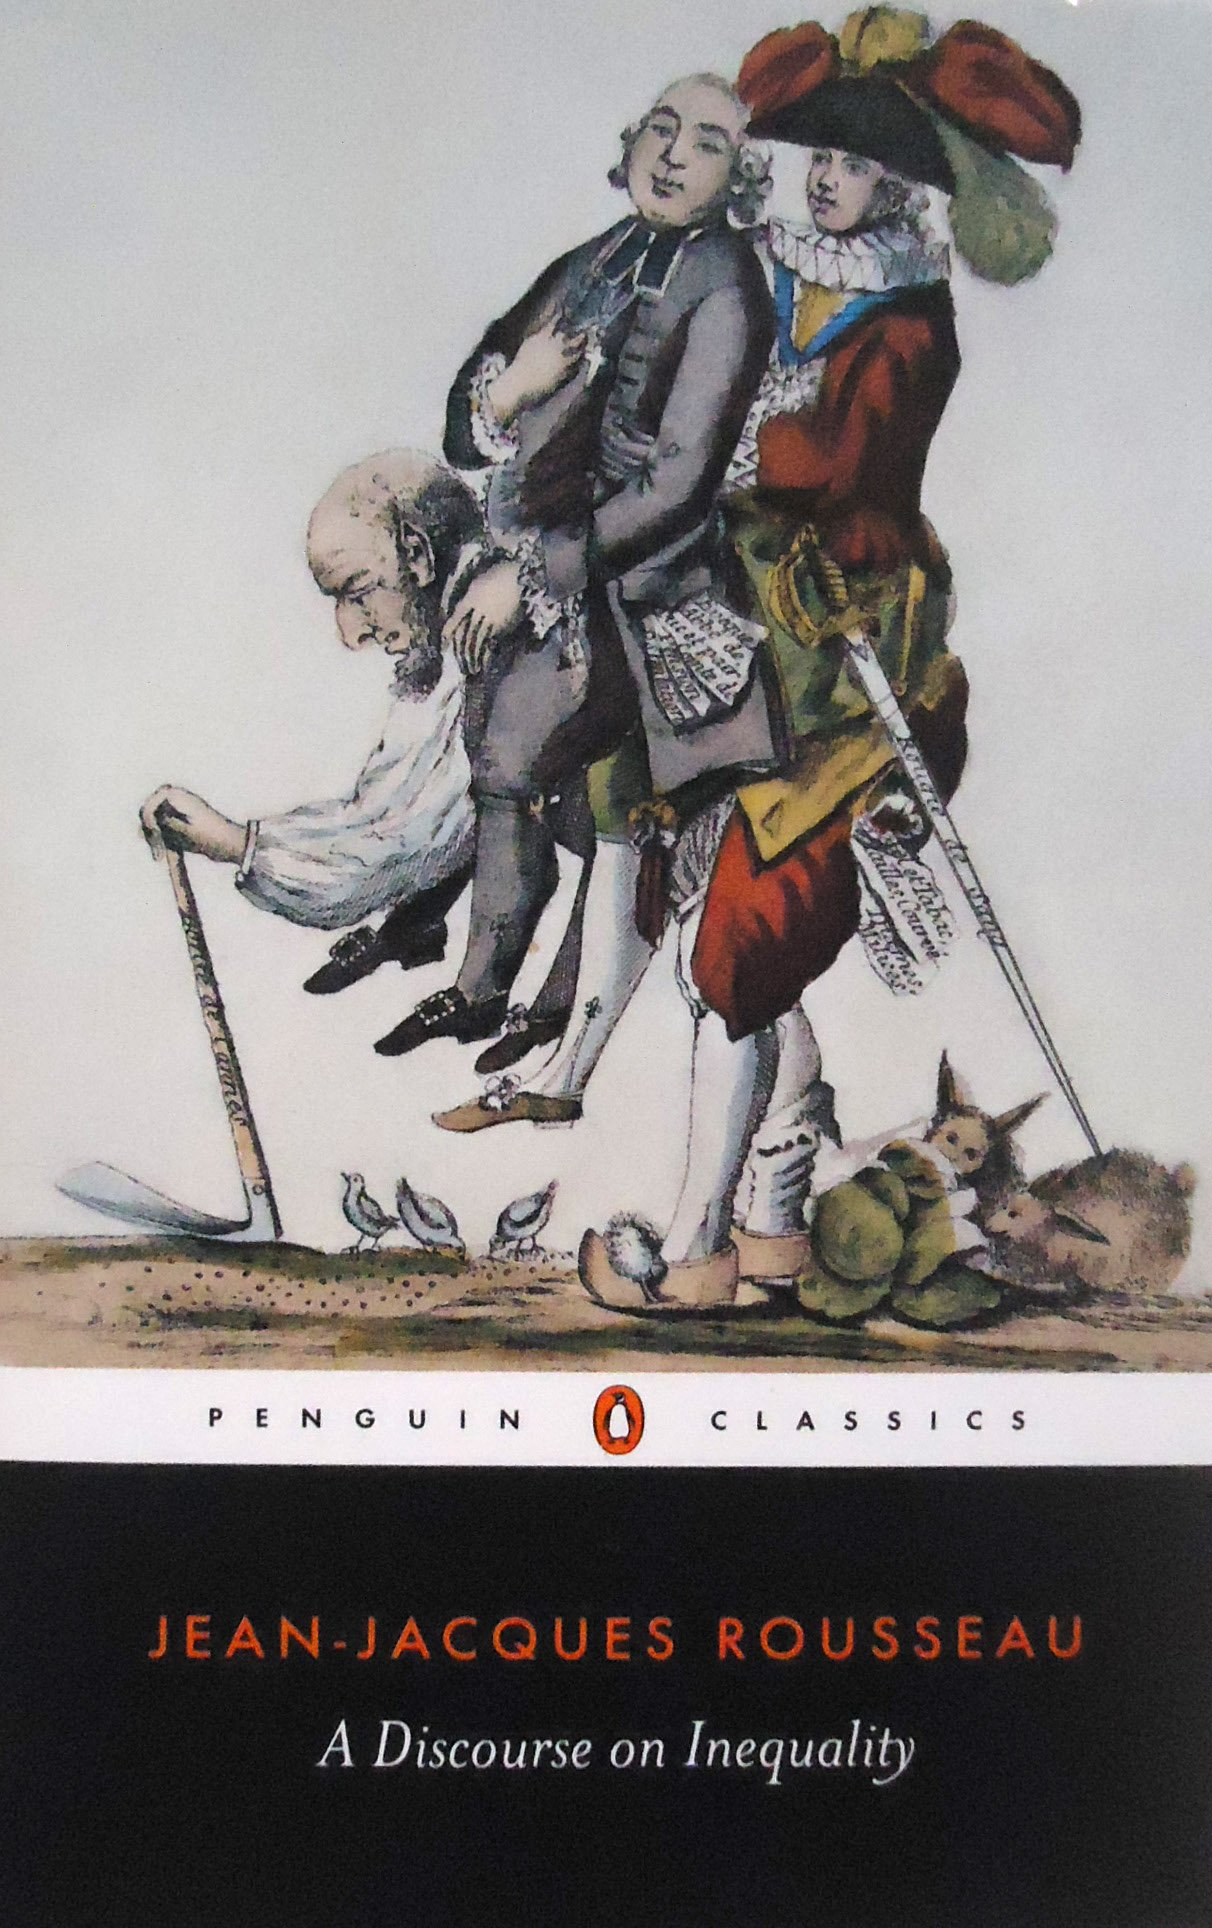 a discourse on inequality penguin classics jean jacques a discourse on inequality penguin classics jean jacques rousseau maurice cranston 9780140444391 com books